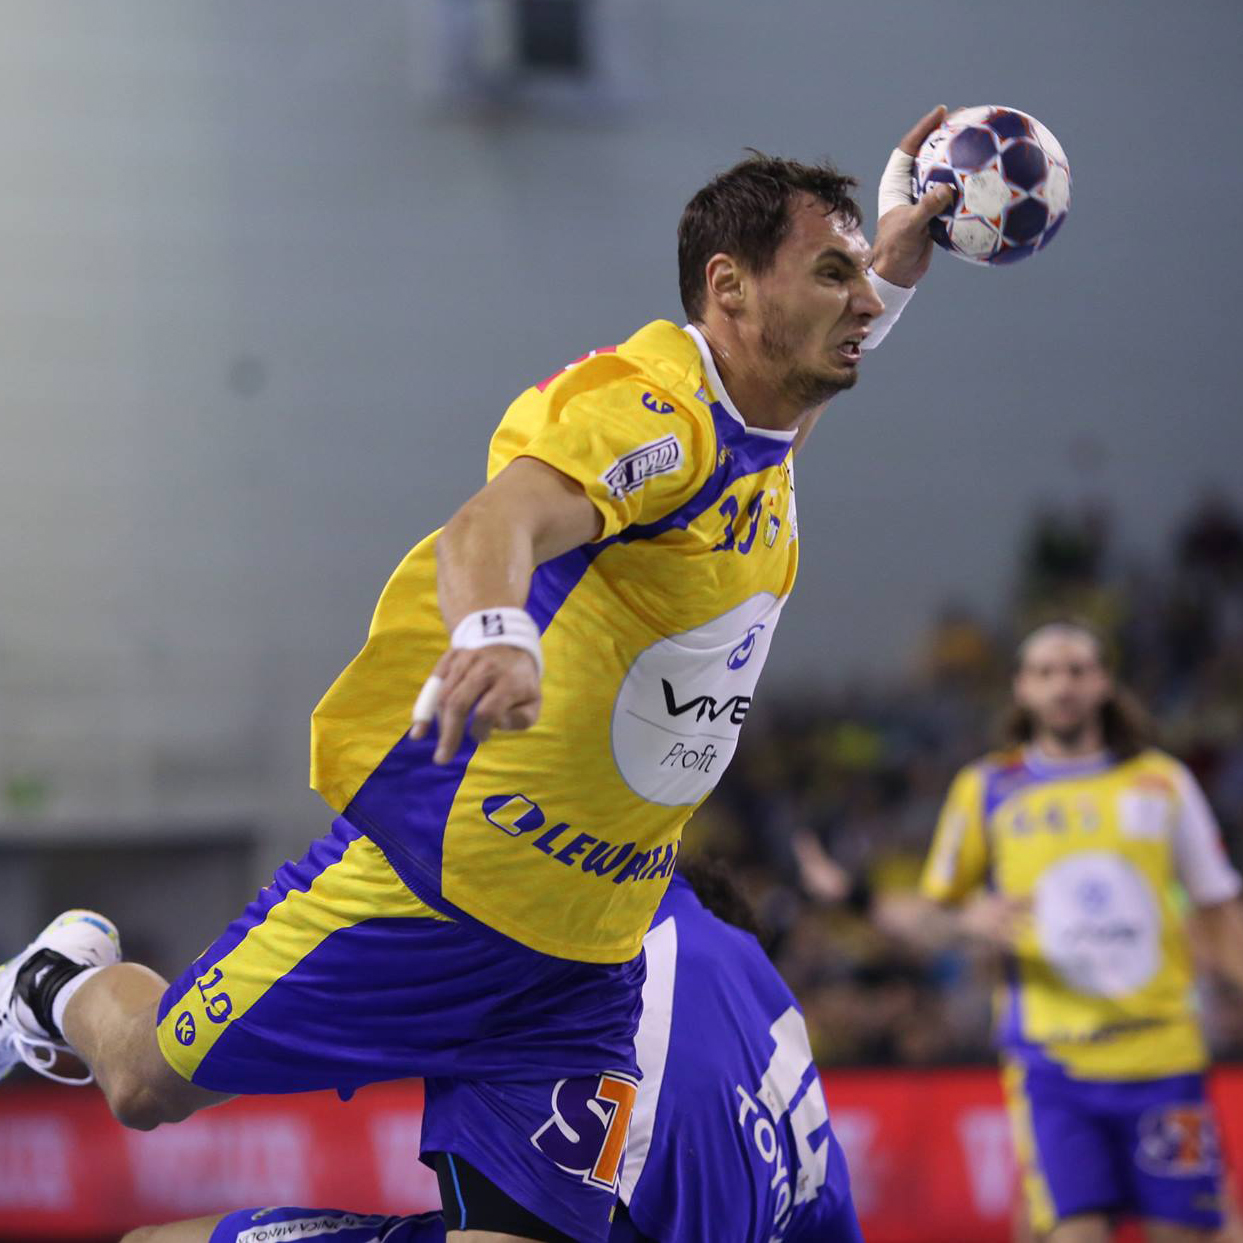 Aguinagalde shines to bring Kielce back on track in the MOTW